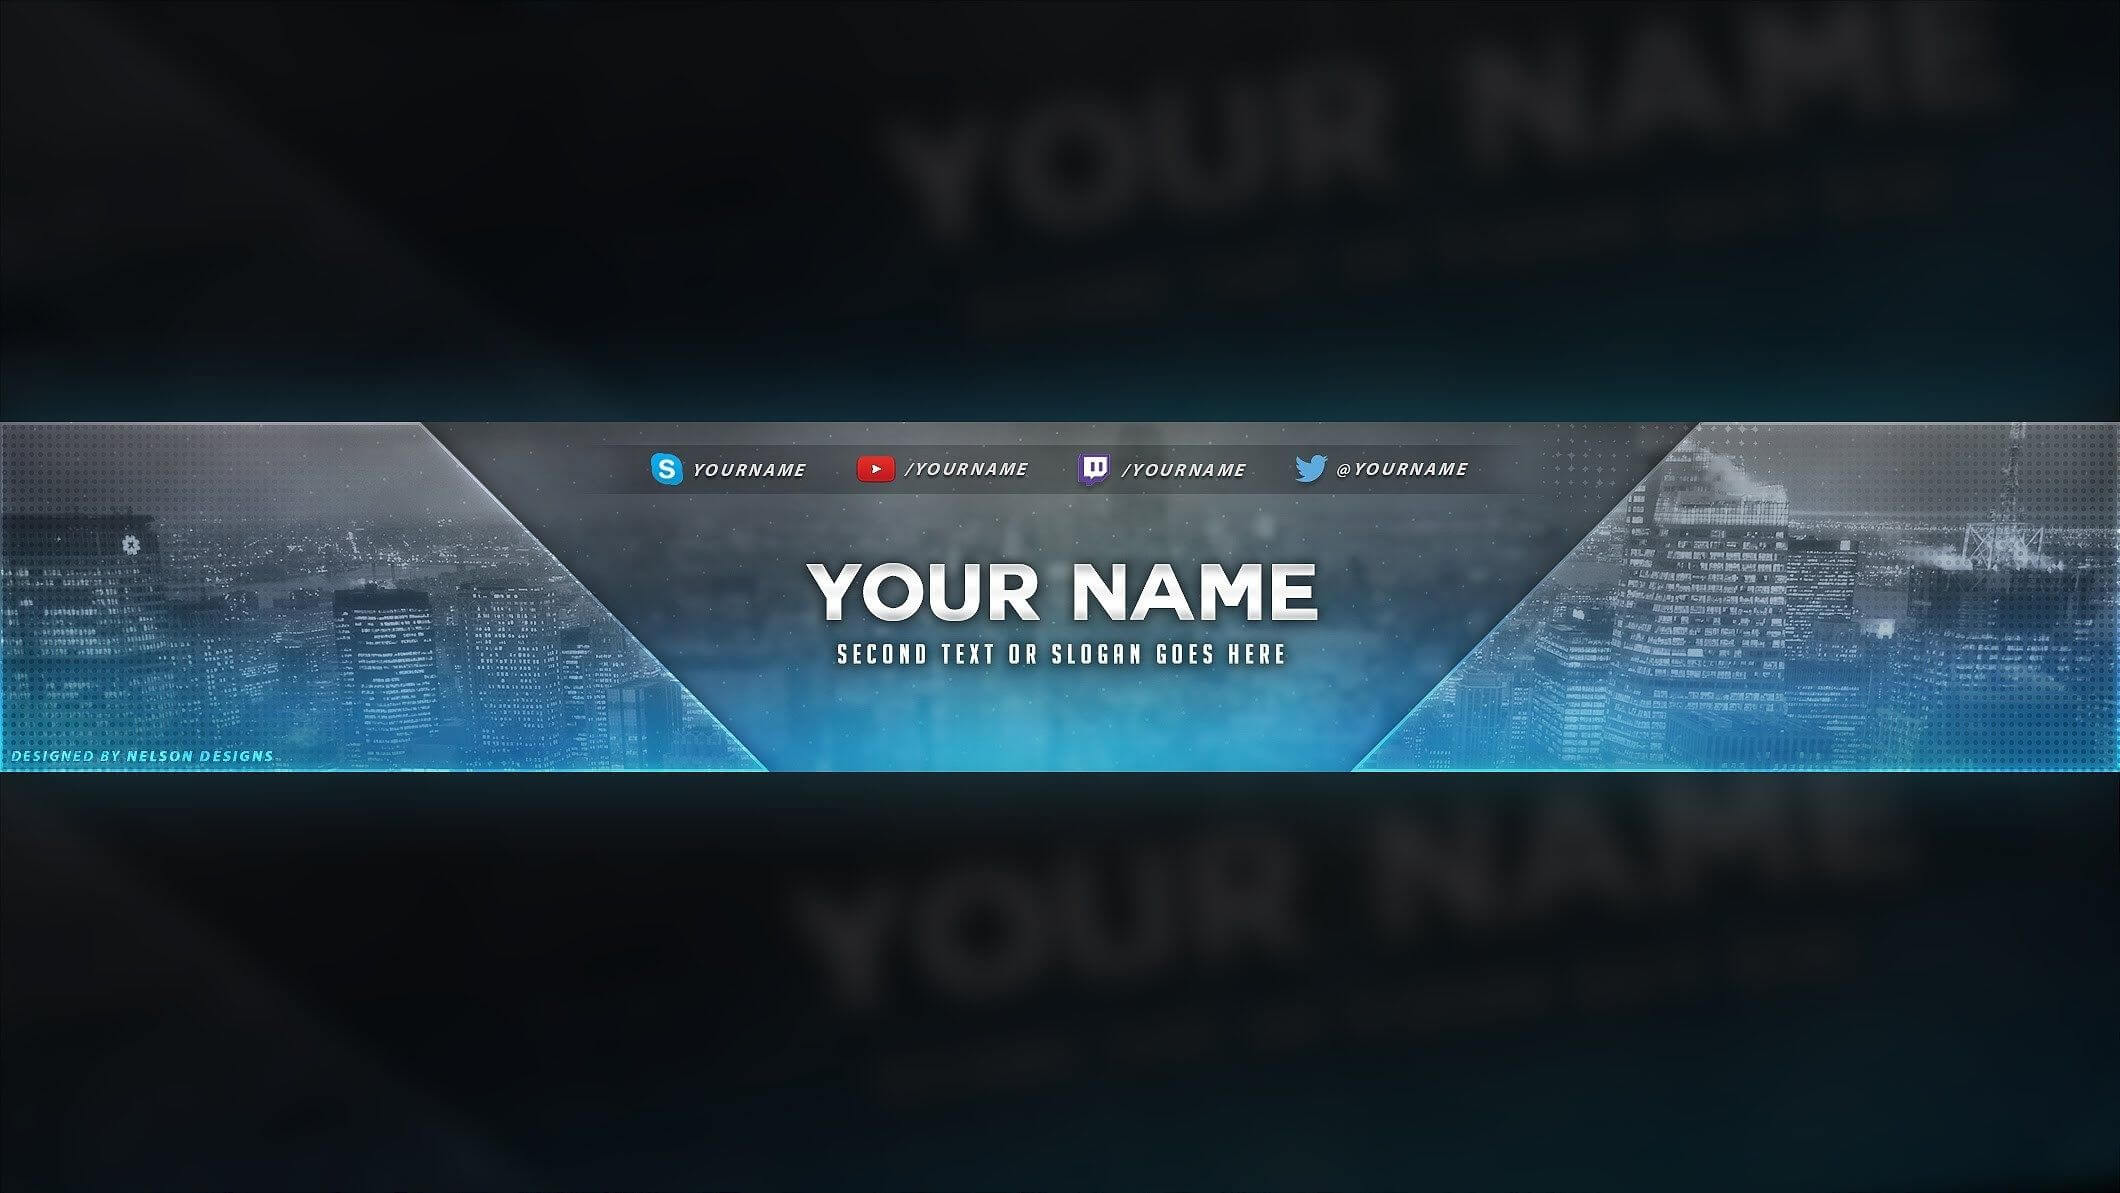 4 Free Youtube Banner Psd Template Designs - Social Media Intended For Yt Banner Template